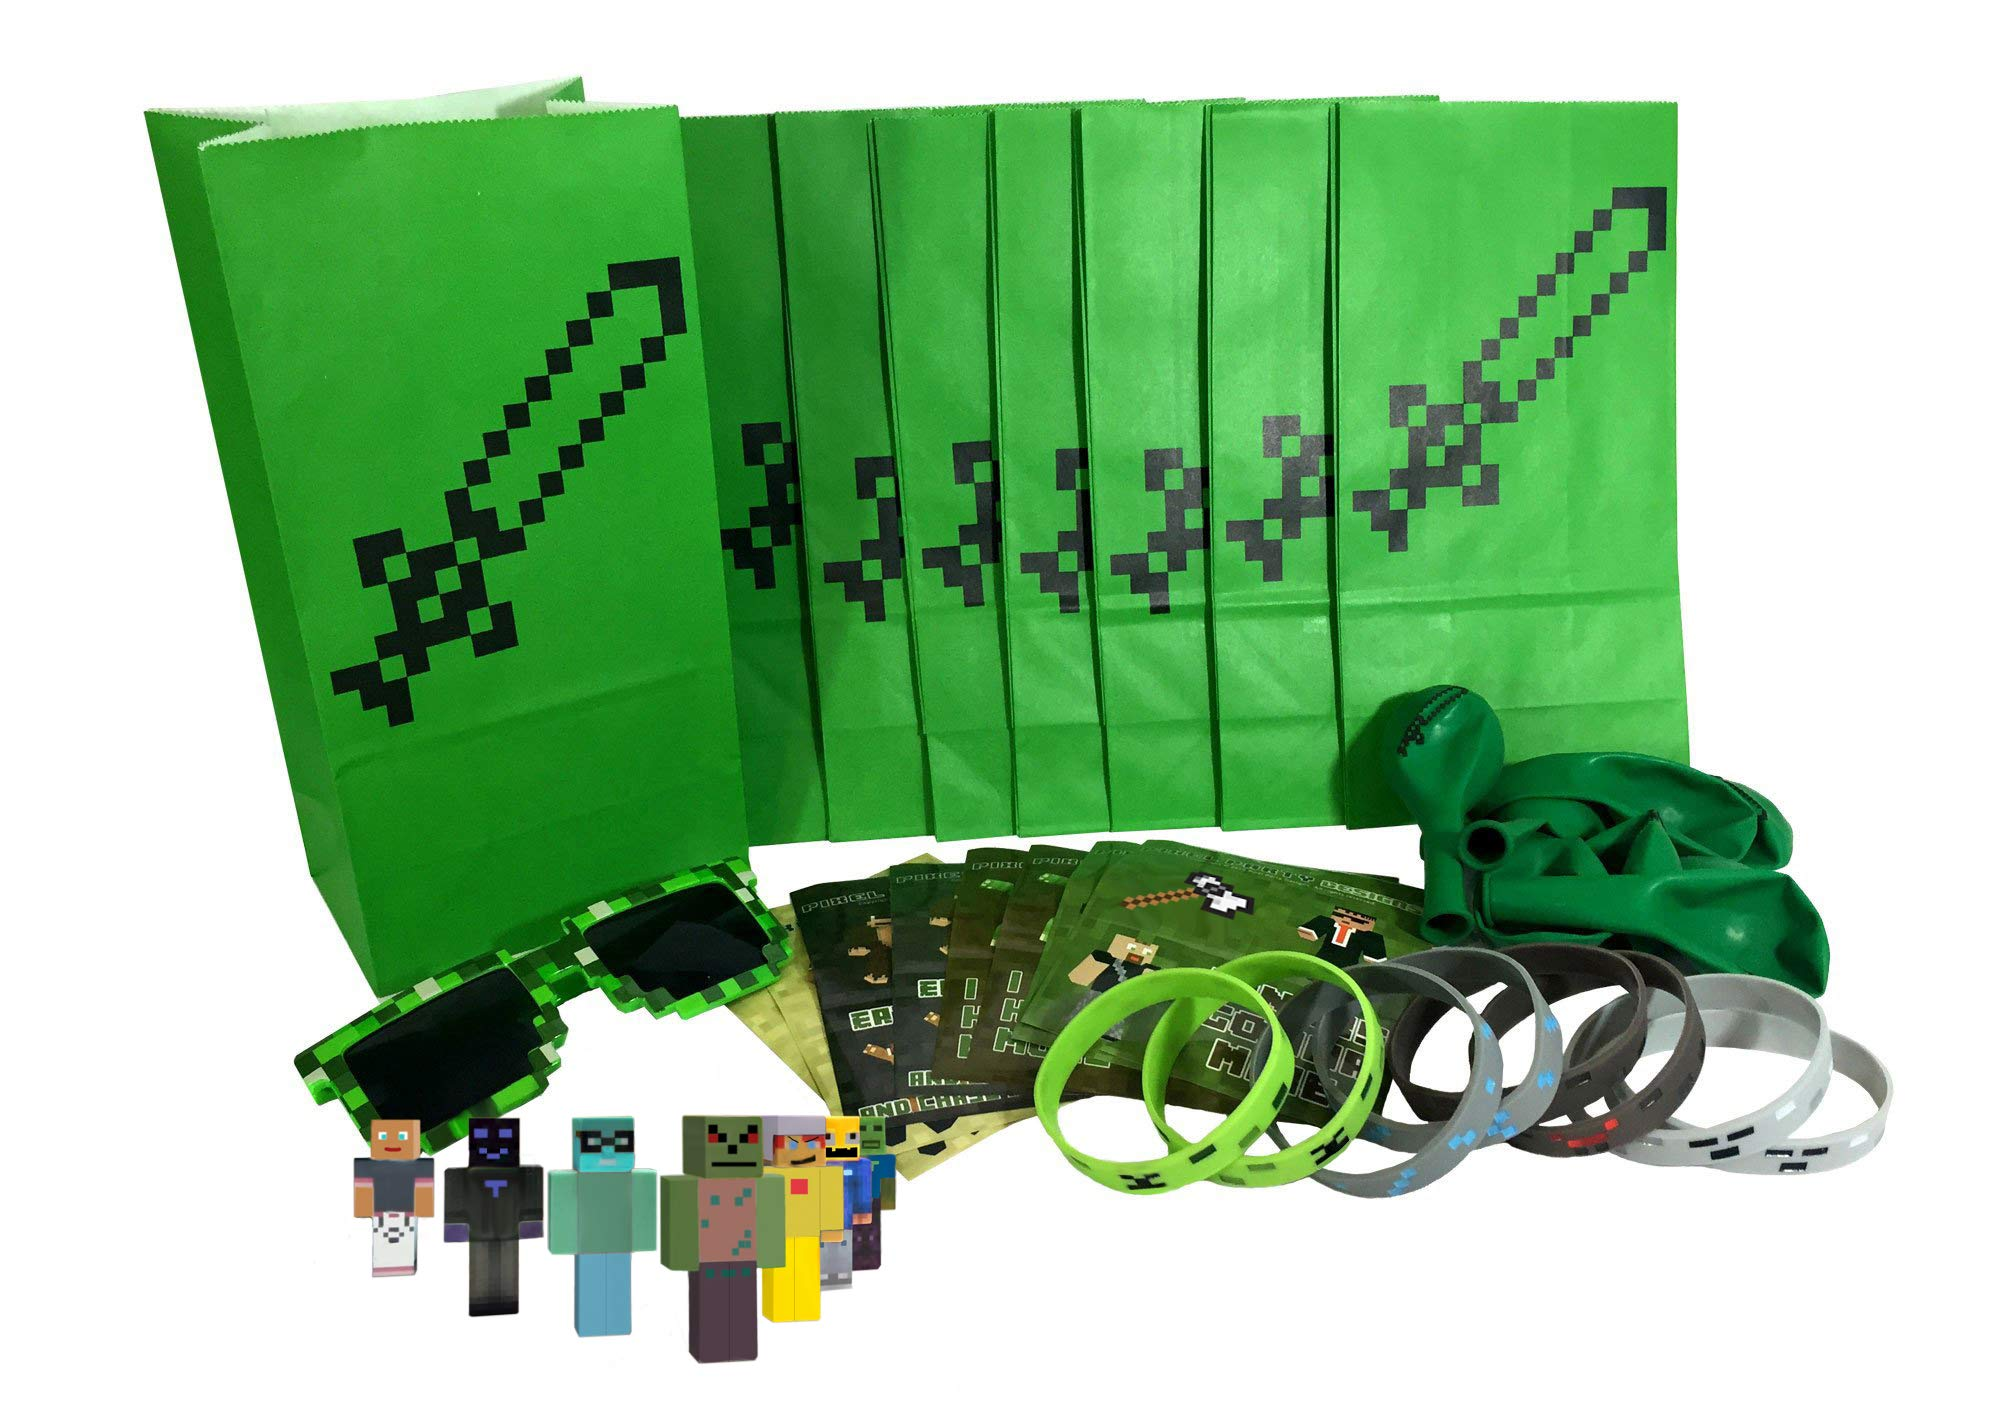 Pixel Miner, Crafting Style Birthday Party Favors Sets (8-Pack) - Birthday Party Supplies Kit Includes Party Bags, Stickers, Wristbands, Mini Character Toys, Balloons, and ONE Bonus Pair of Sunglasses